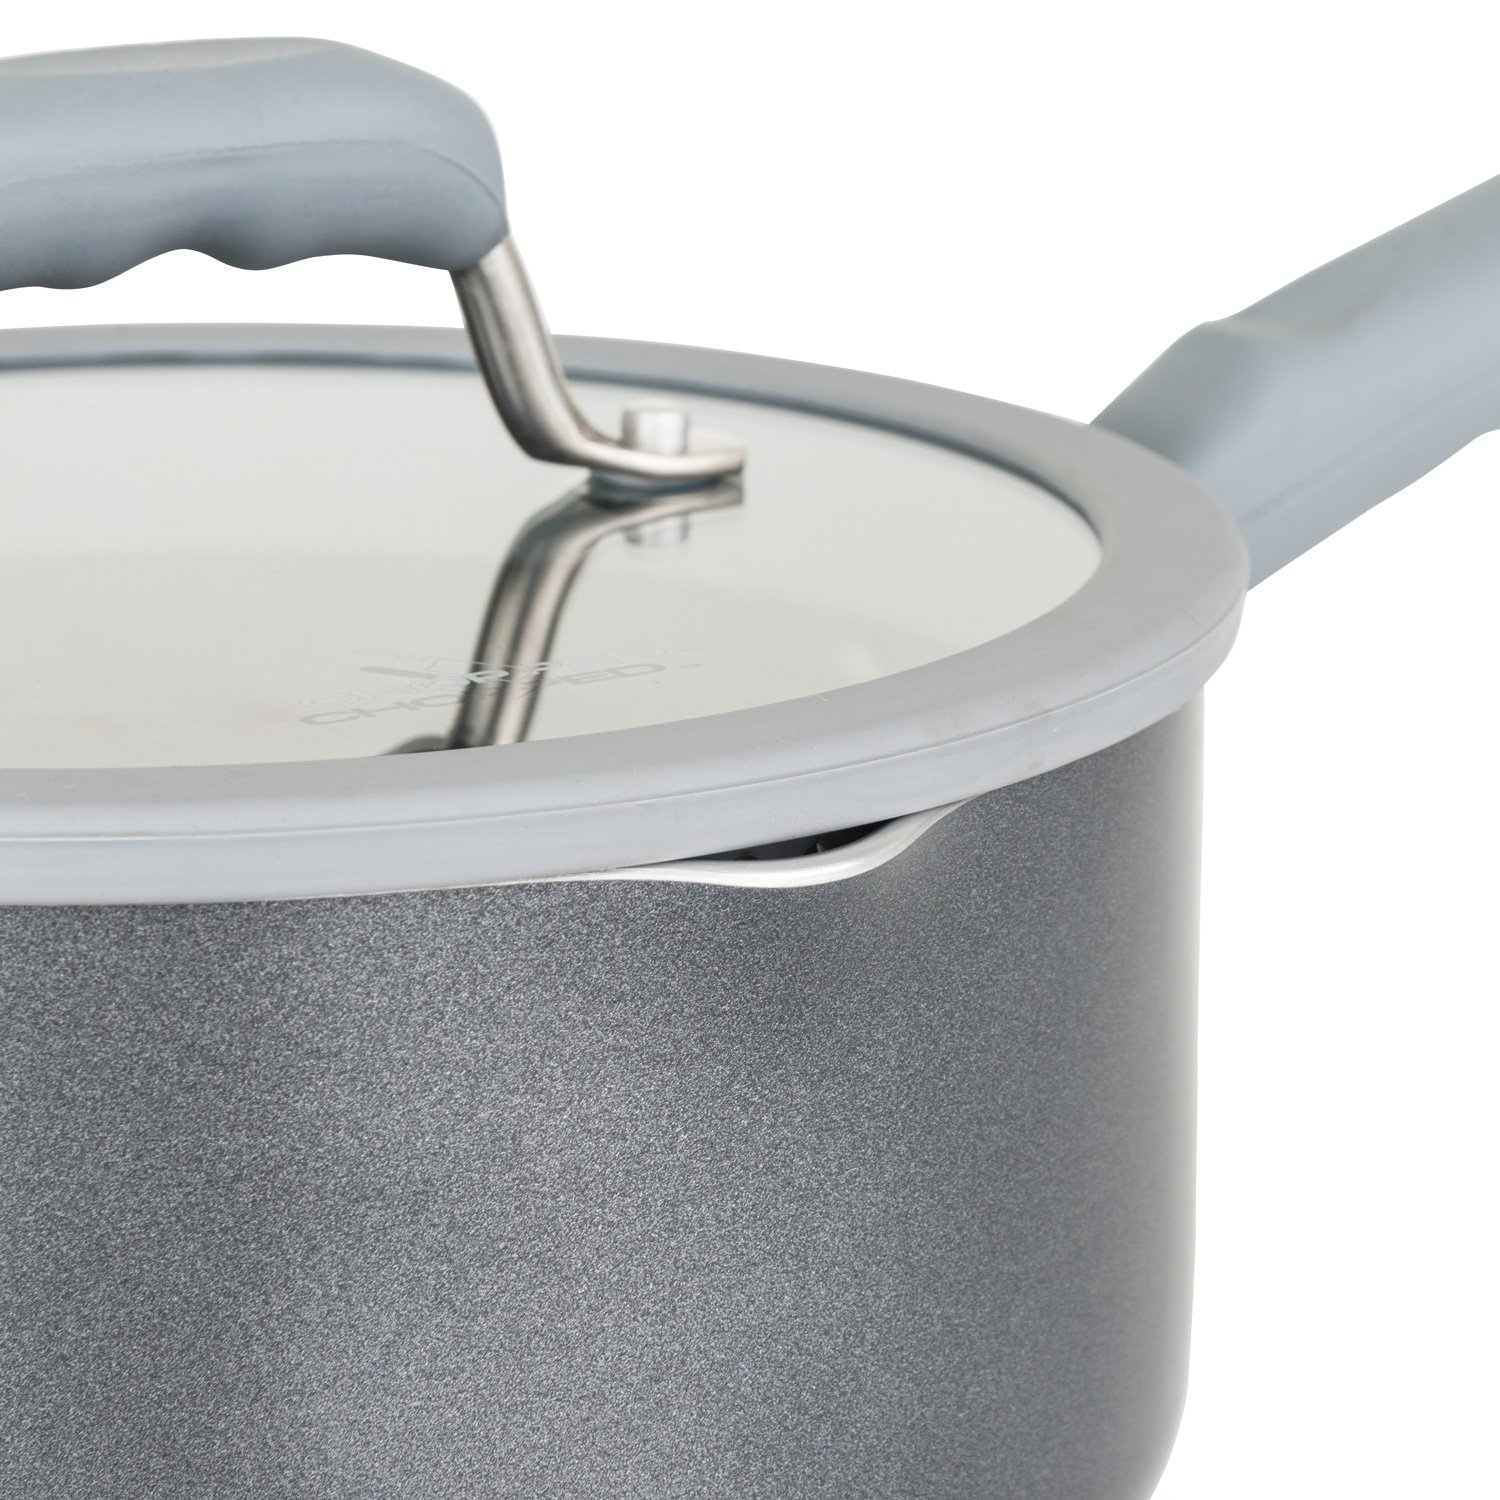 Chopped 60141-9990-GRY Aluminum Cookware Set, 10 Piece, Gray by Chopped (Image #4)